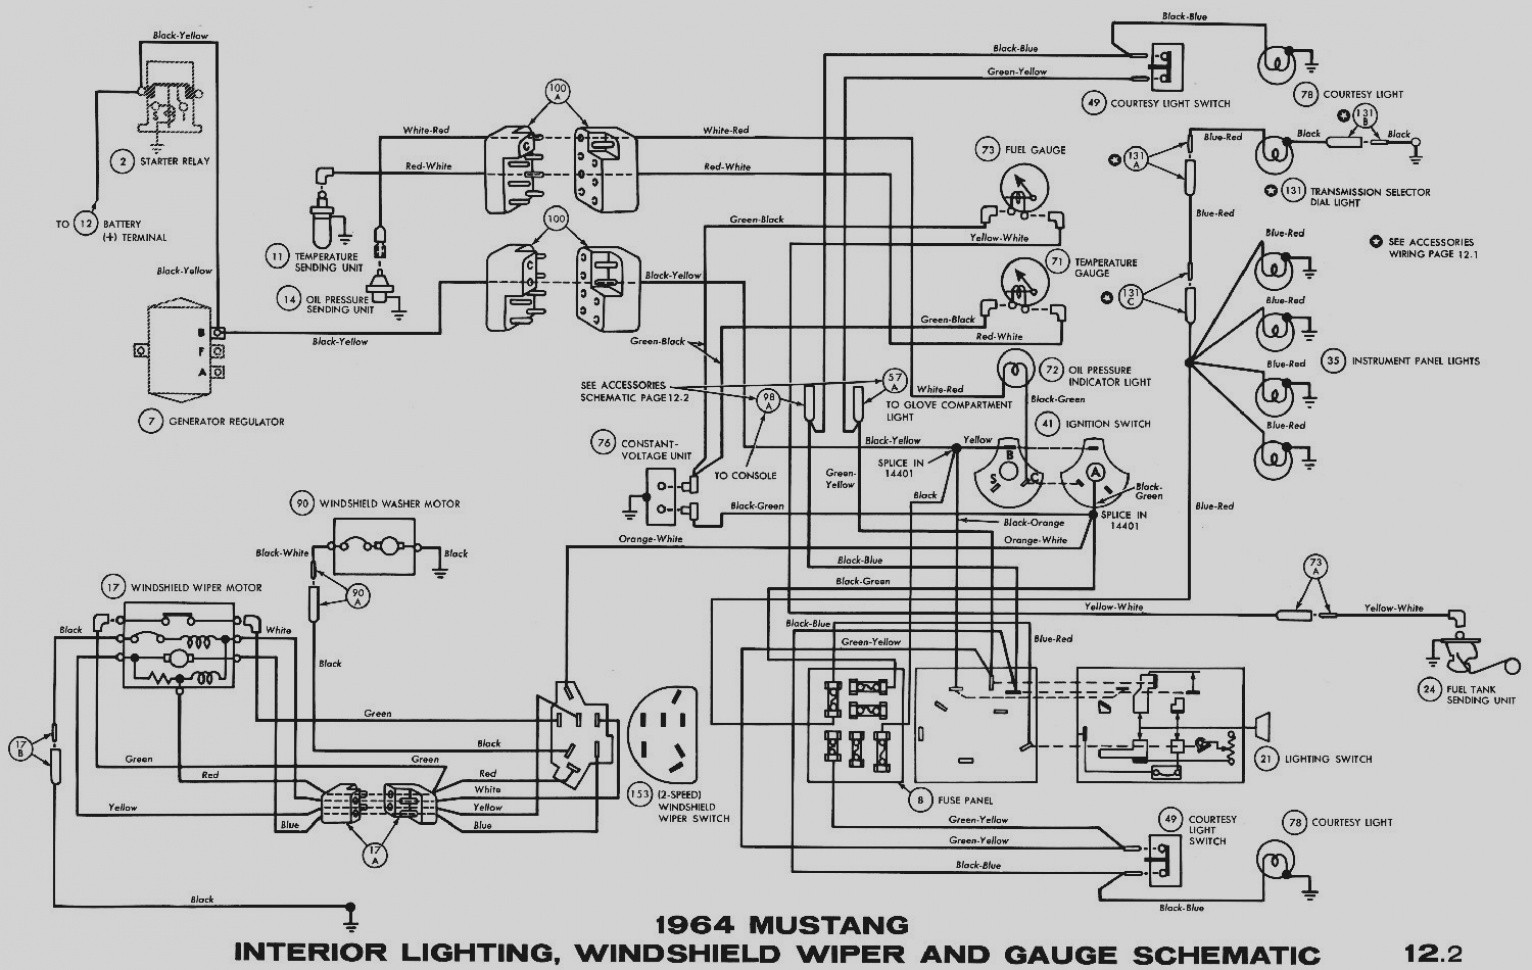 1975 jaguar 4 2 wiring diagram wiring library1975 f100 wiring diagrams [ 1532 x 970 Pixel ]